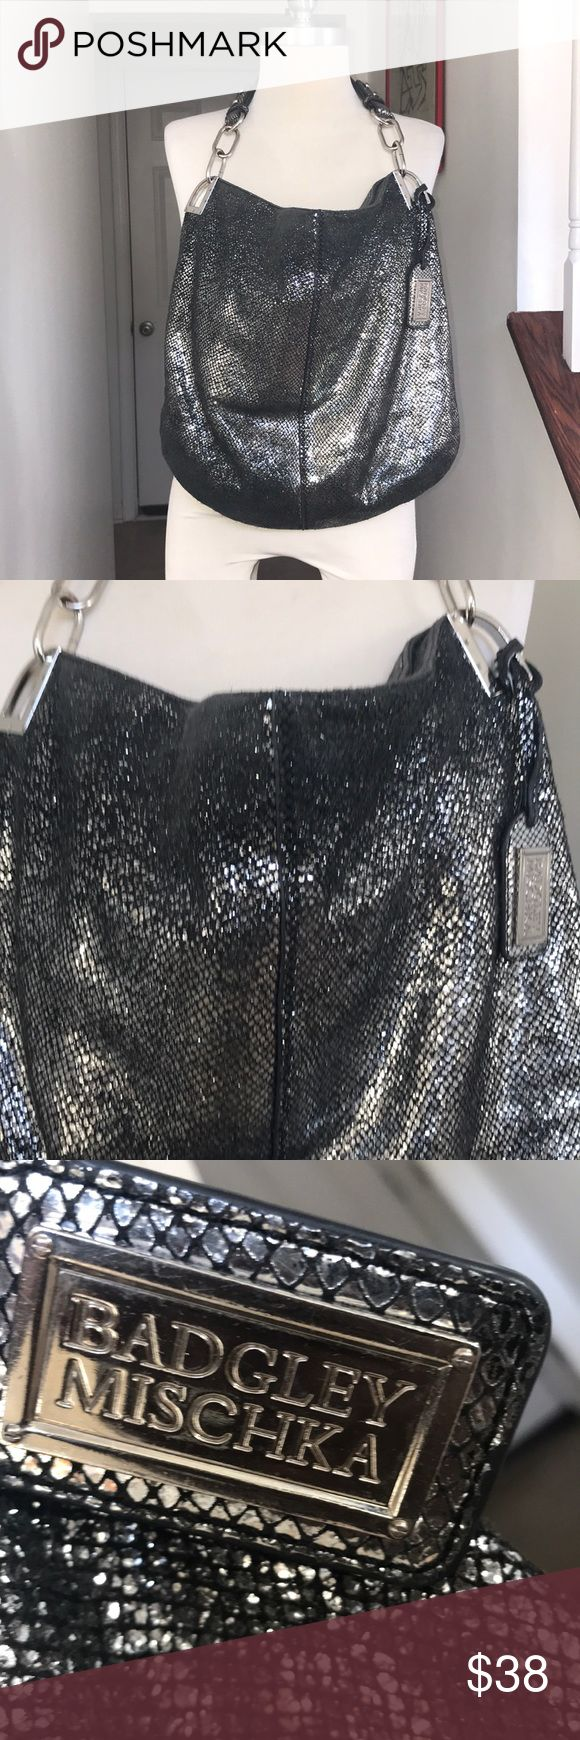 Badgley Mischka Silver Tone Pewter Leather Hobo😘 Title Says it All😘😘 This bag is well loved and very worn but still have plenty of use Life left in it. This is not a bag that need babying. It has some rub spots at the top for going in and out of it. The interiors is clean and the hang tag will be coming with it. No dust bag. Priced based upon condition. 😘😘 Badgley Mischka Bags Hobos